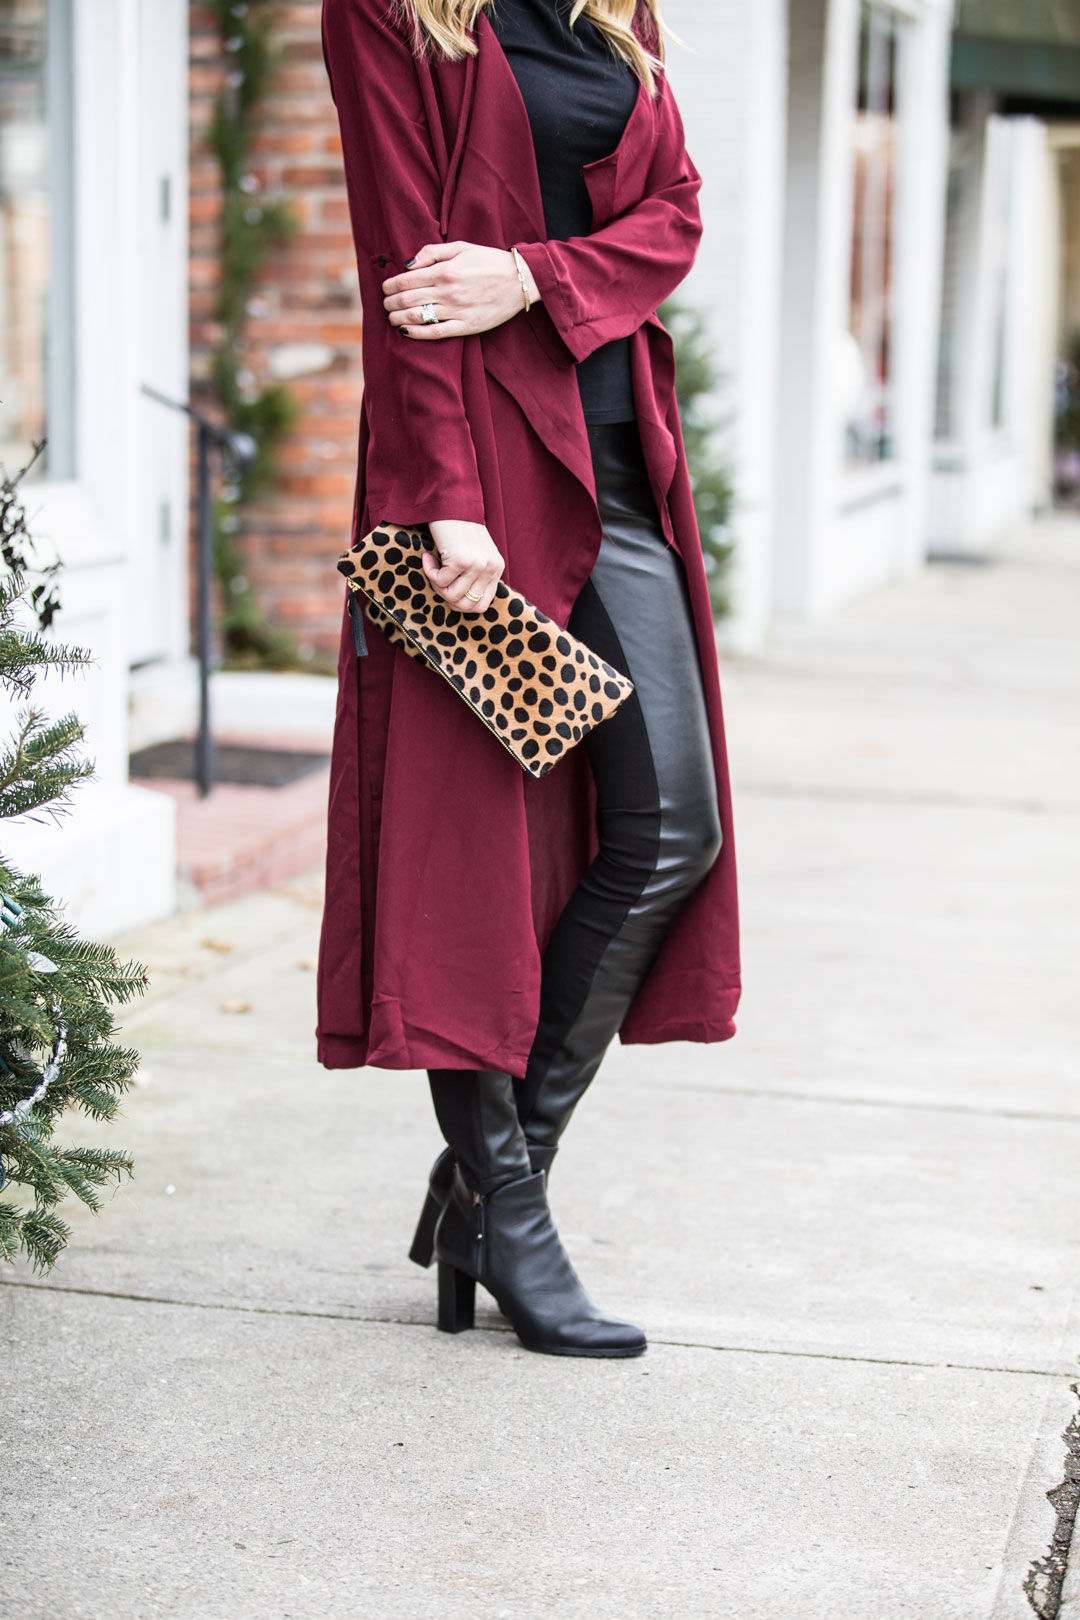 leopard clare v clutch and black booties